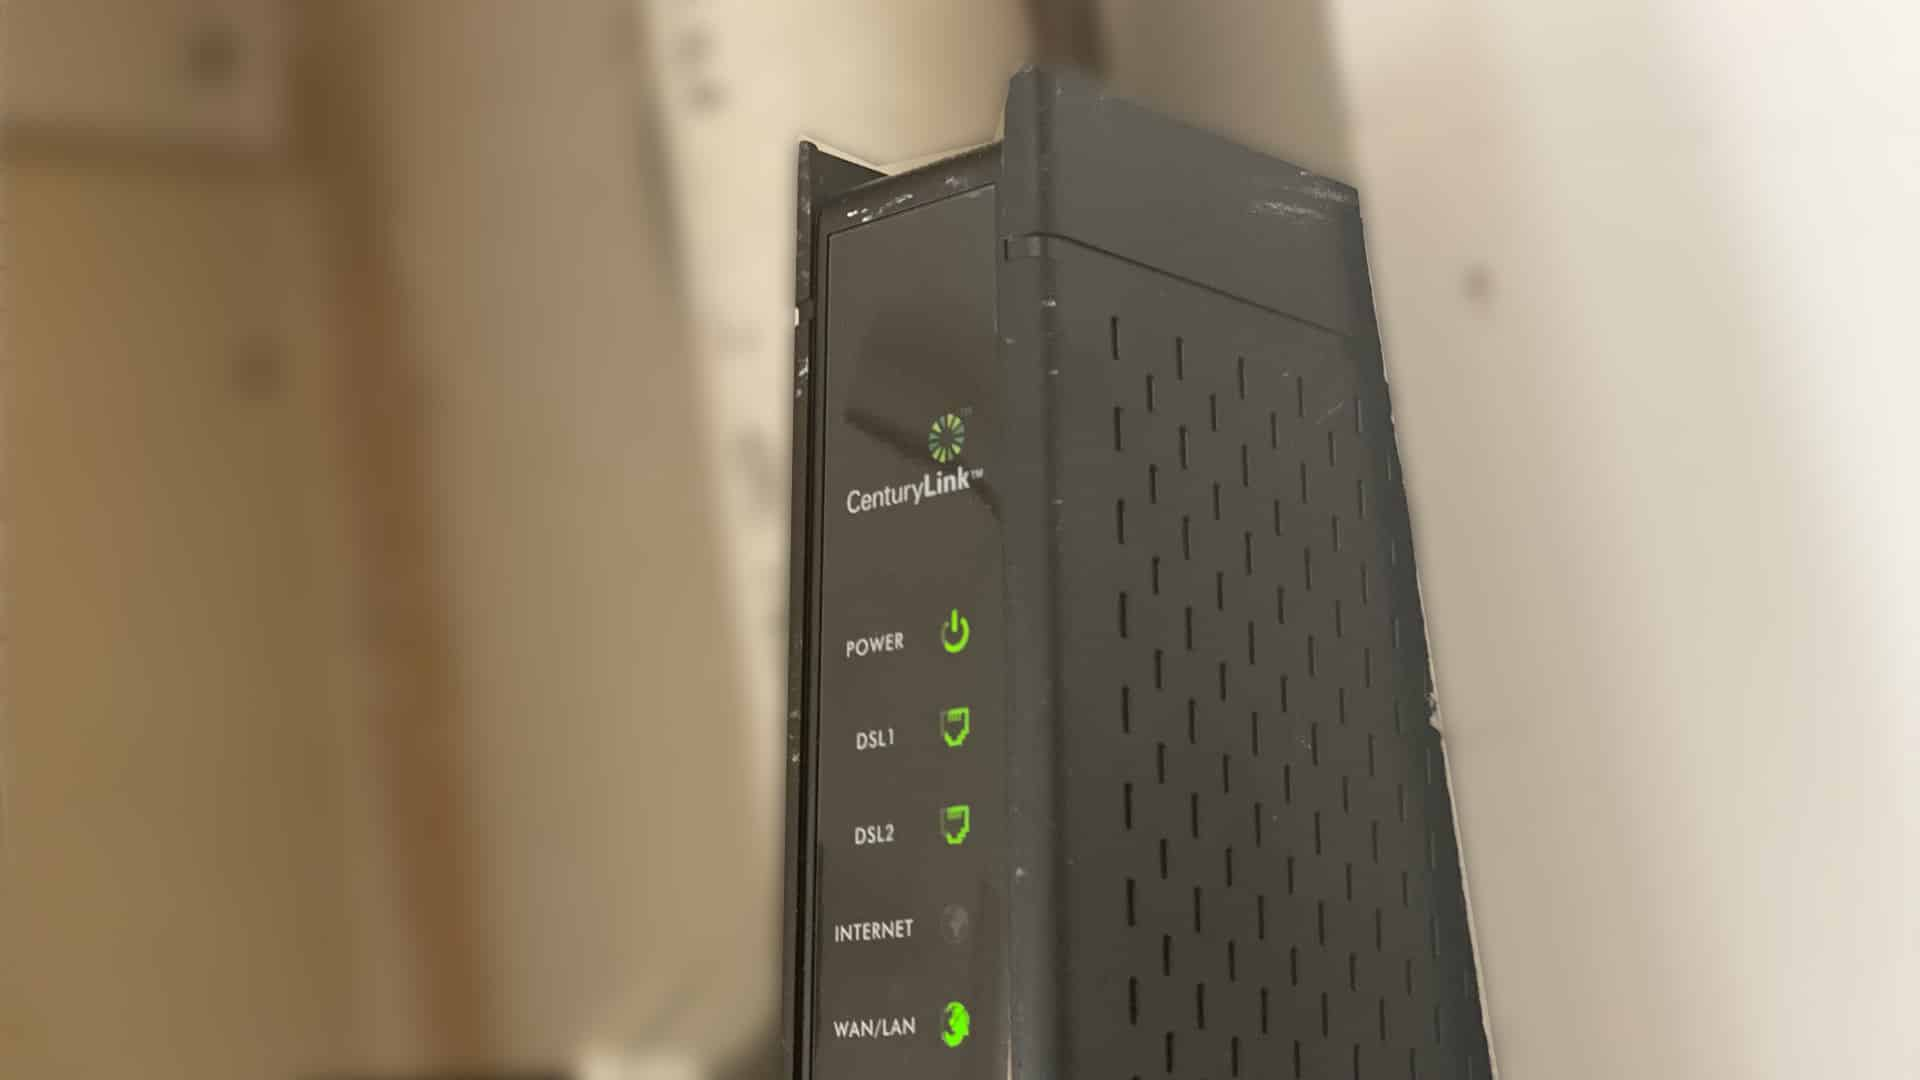 dsl modem/router combo from century link